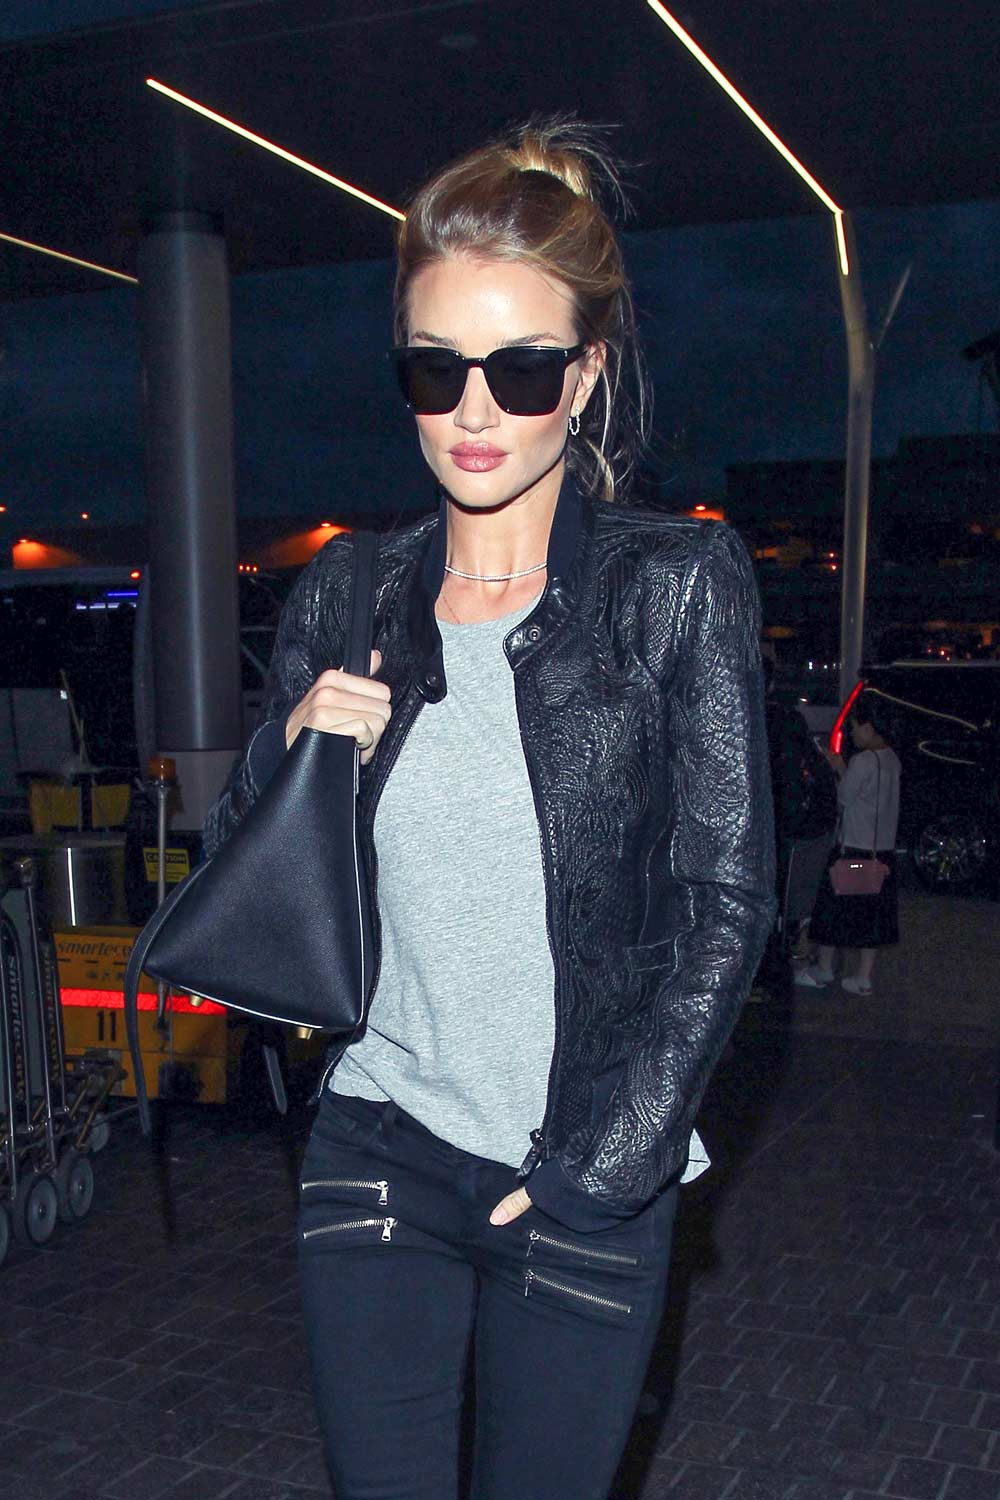 Rosie Huntington Whiteley at LAX